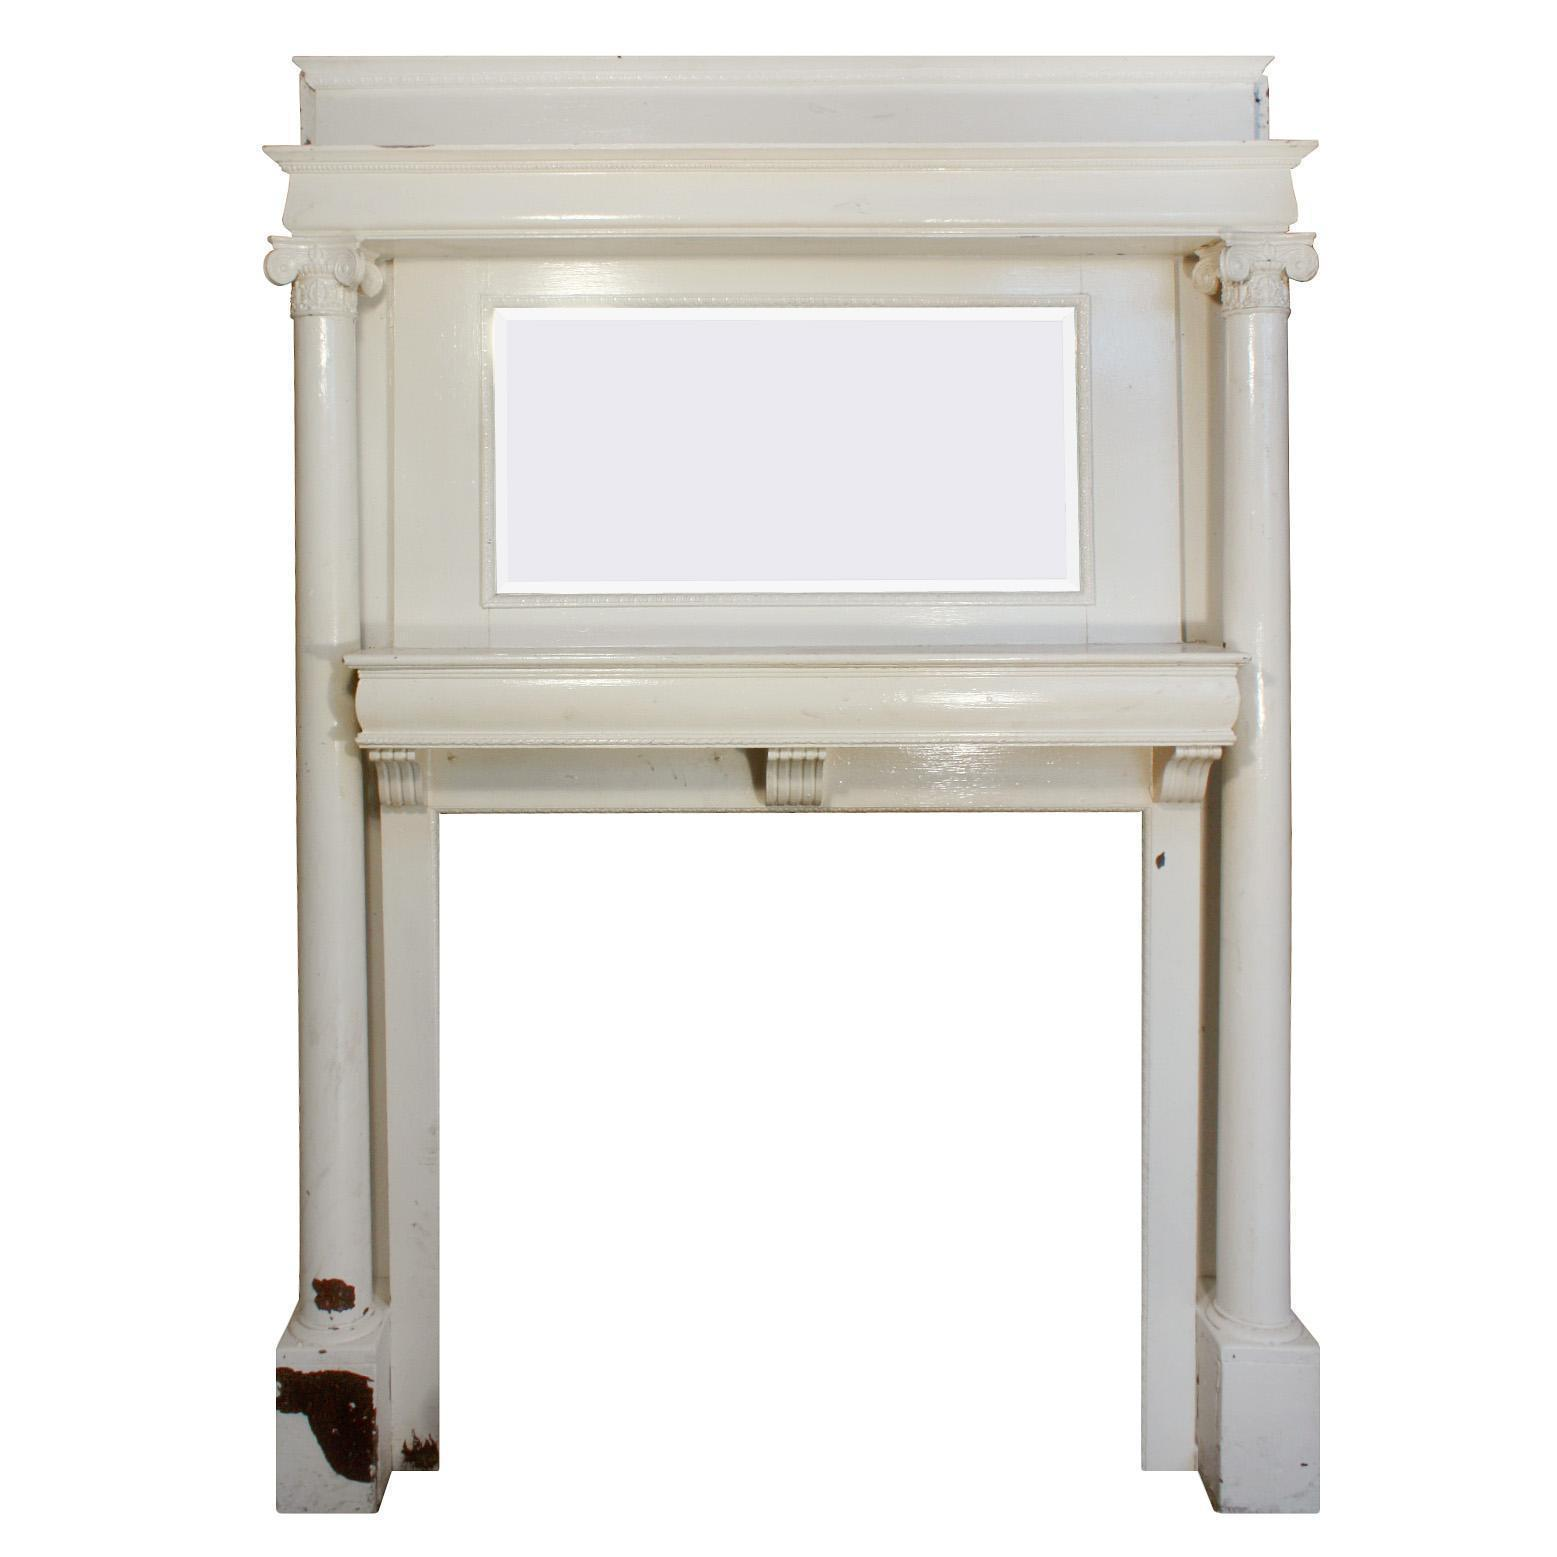 Reclaimed Antique Mantel with Beveled Mirror,  Early 1900's